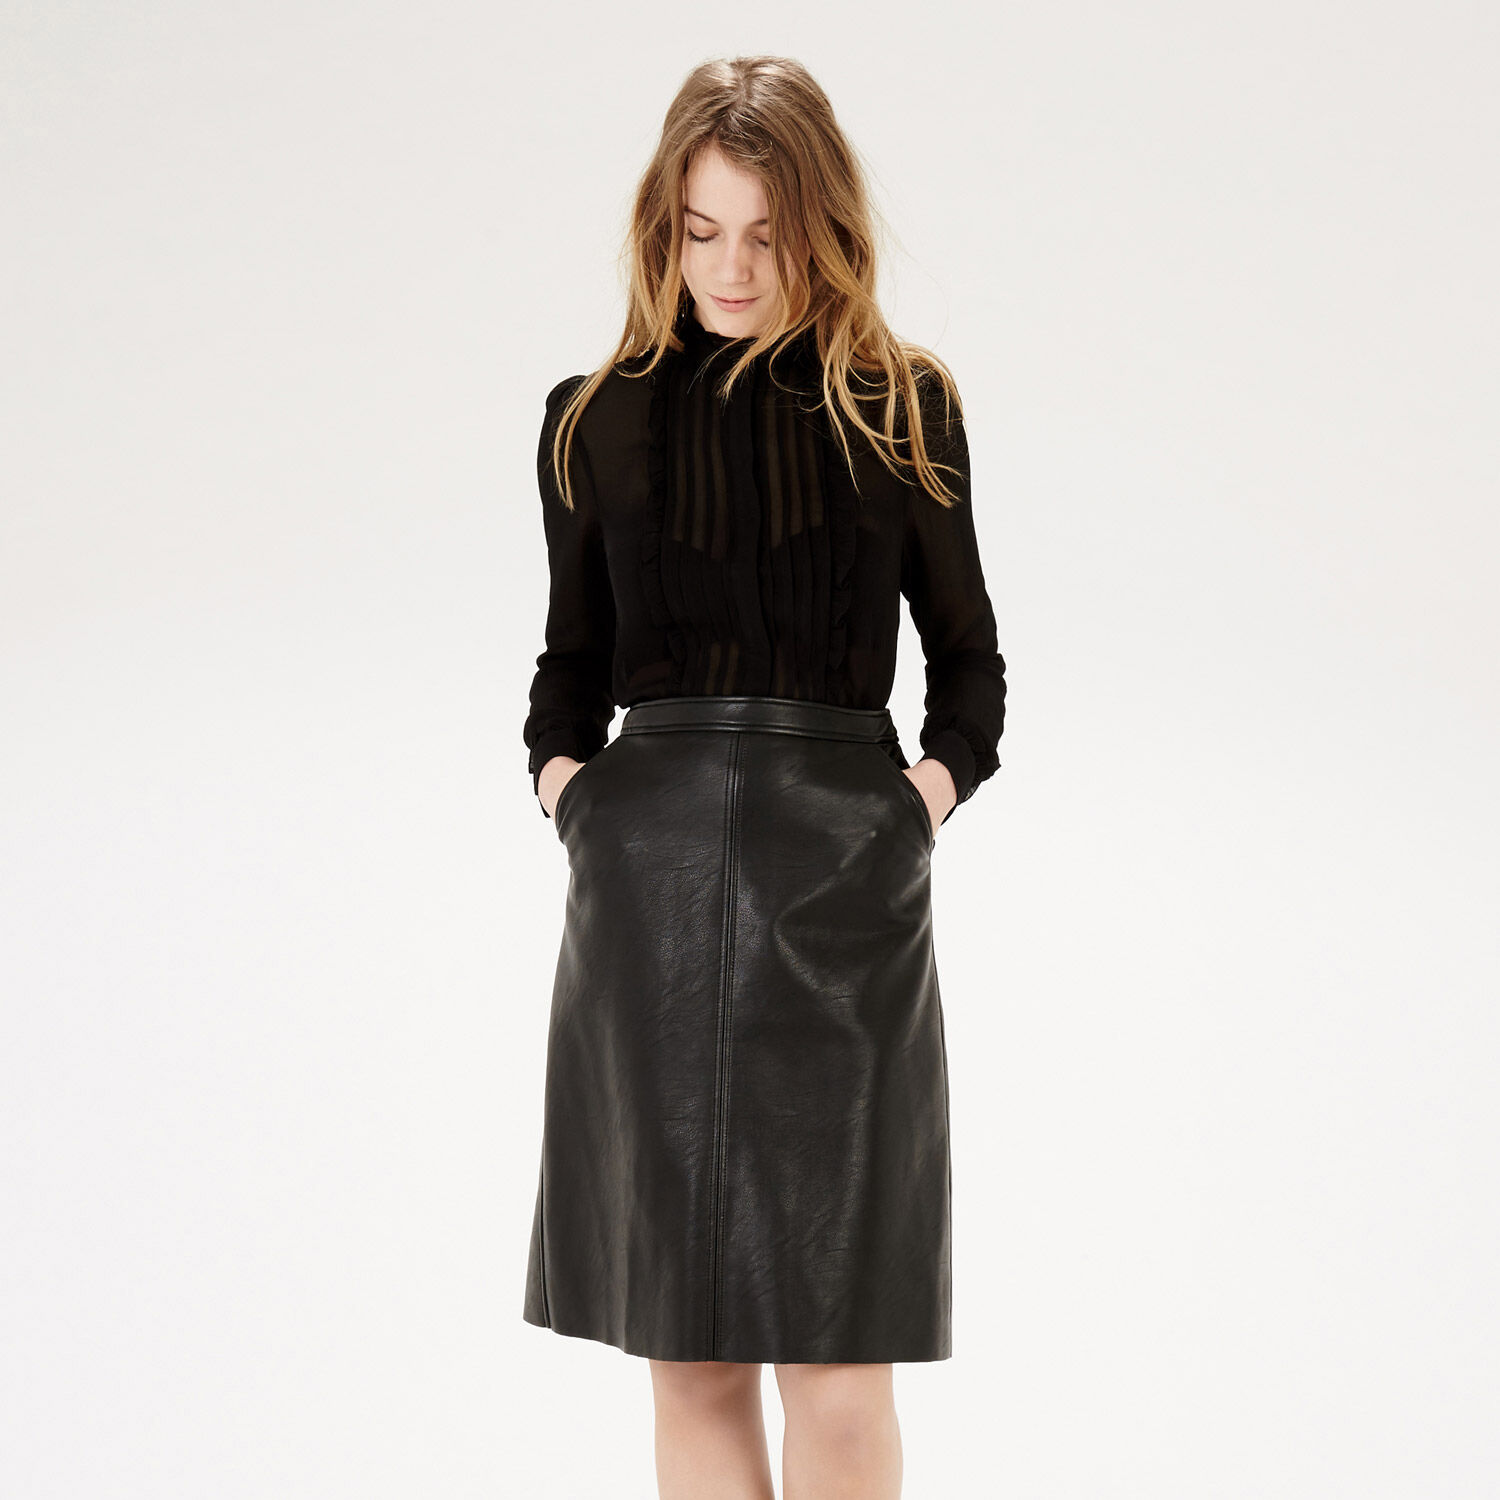 Warehouse, FRILL AND PINTUCK BLOUSE Black 1